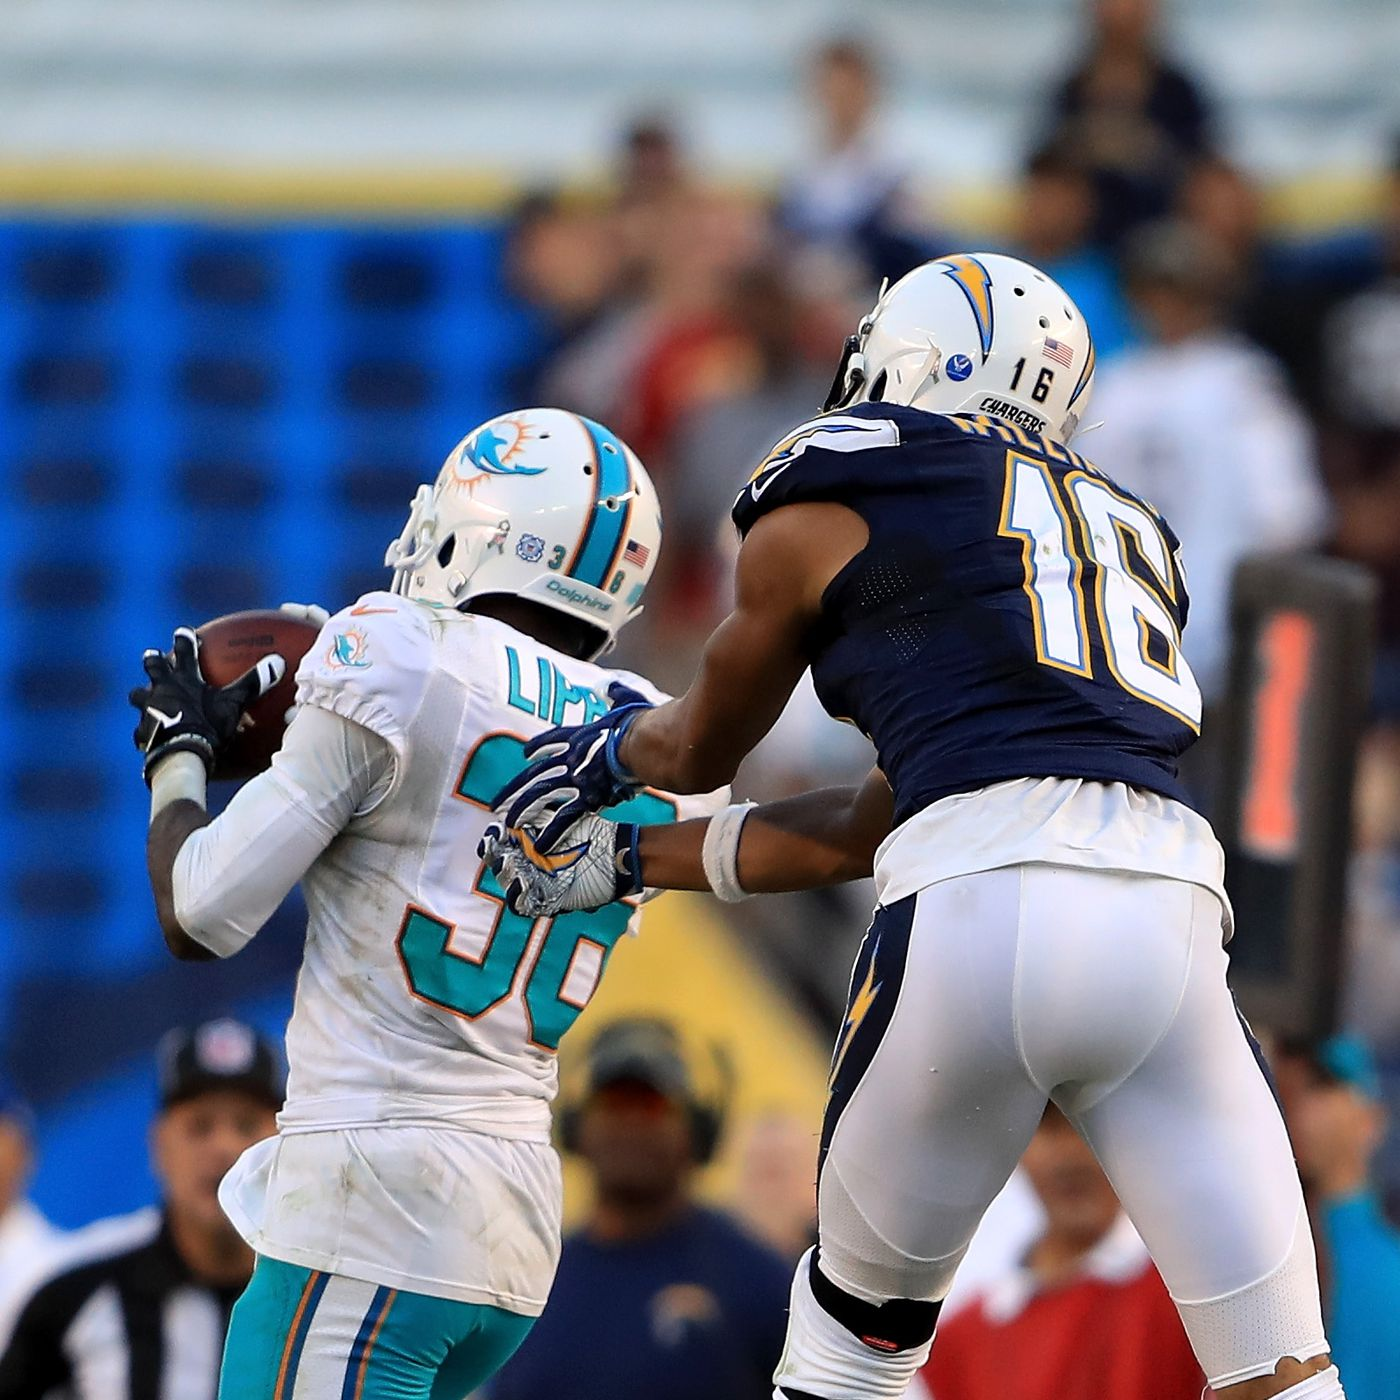 premium selection 0bfc4 eab1a Tony Lippett: Appreciated But Underrated - The Phinsider